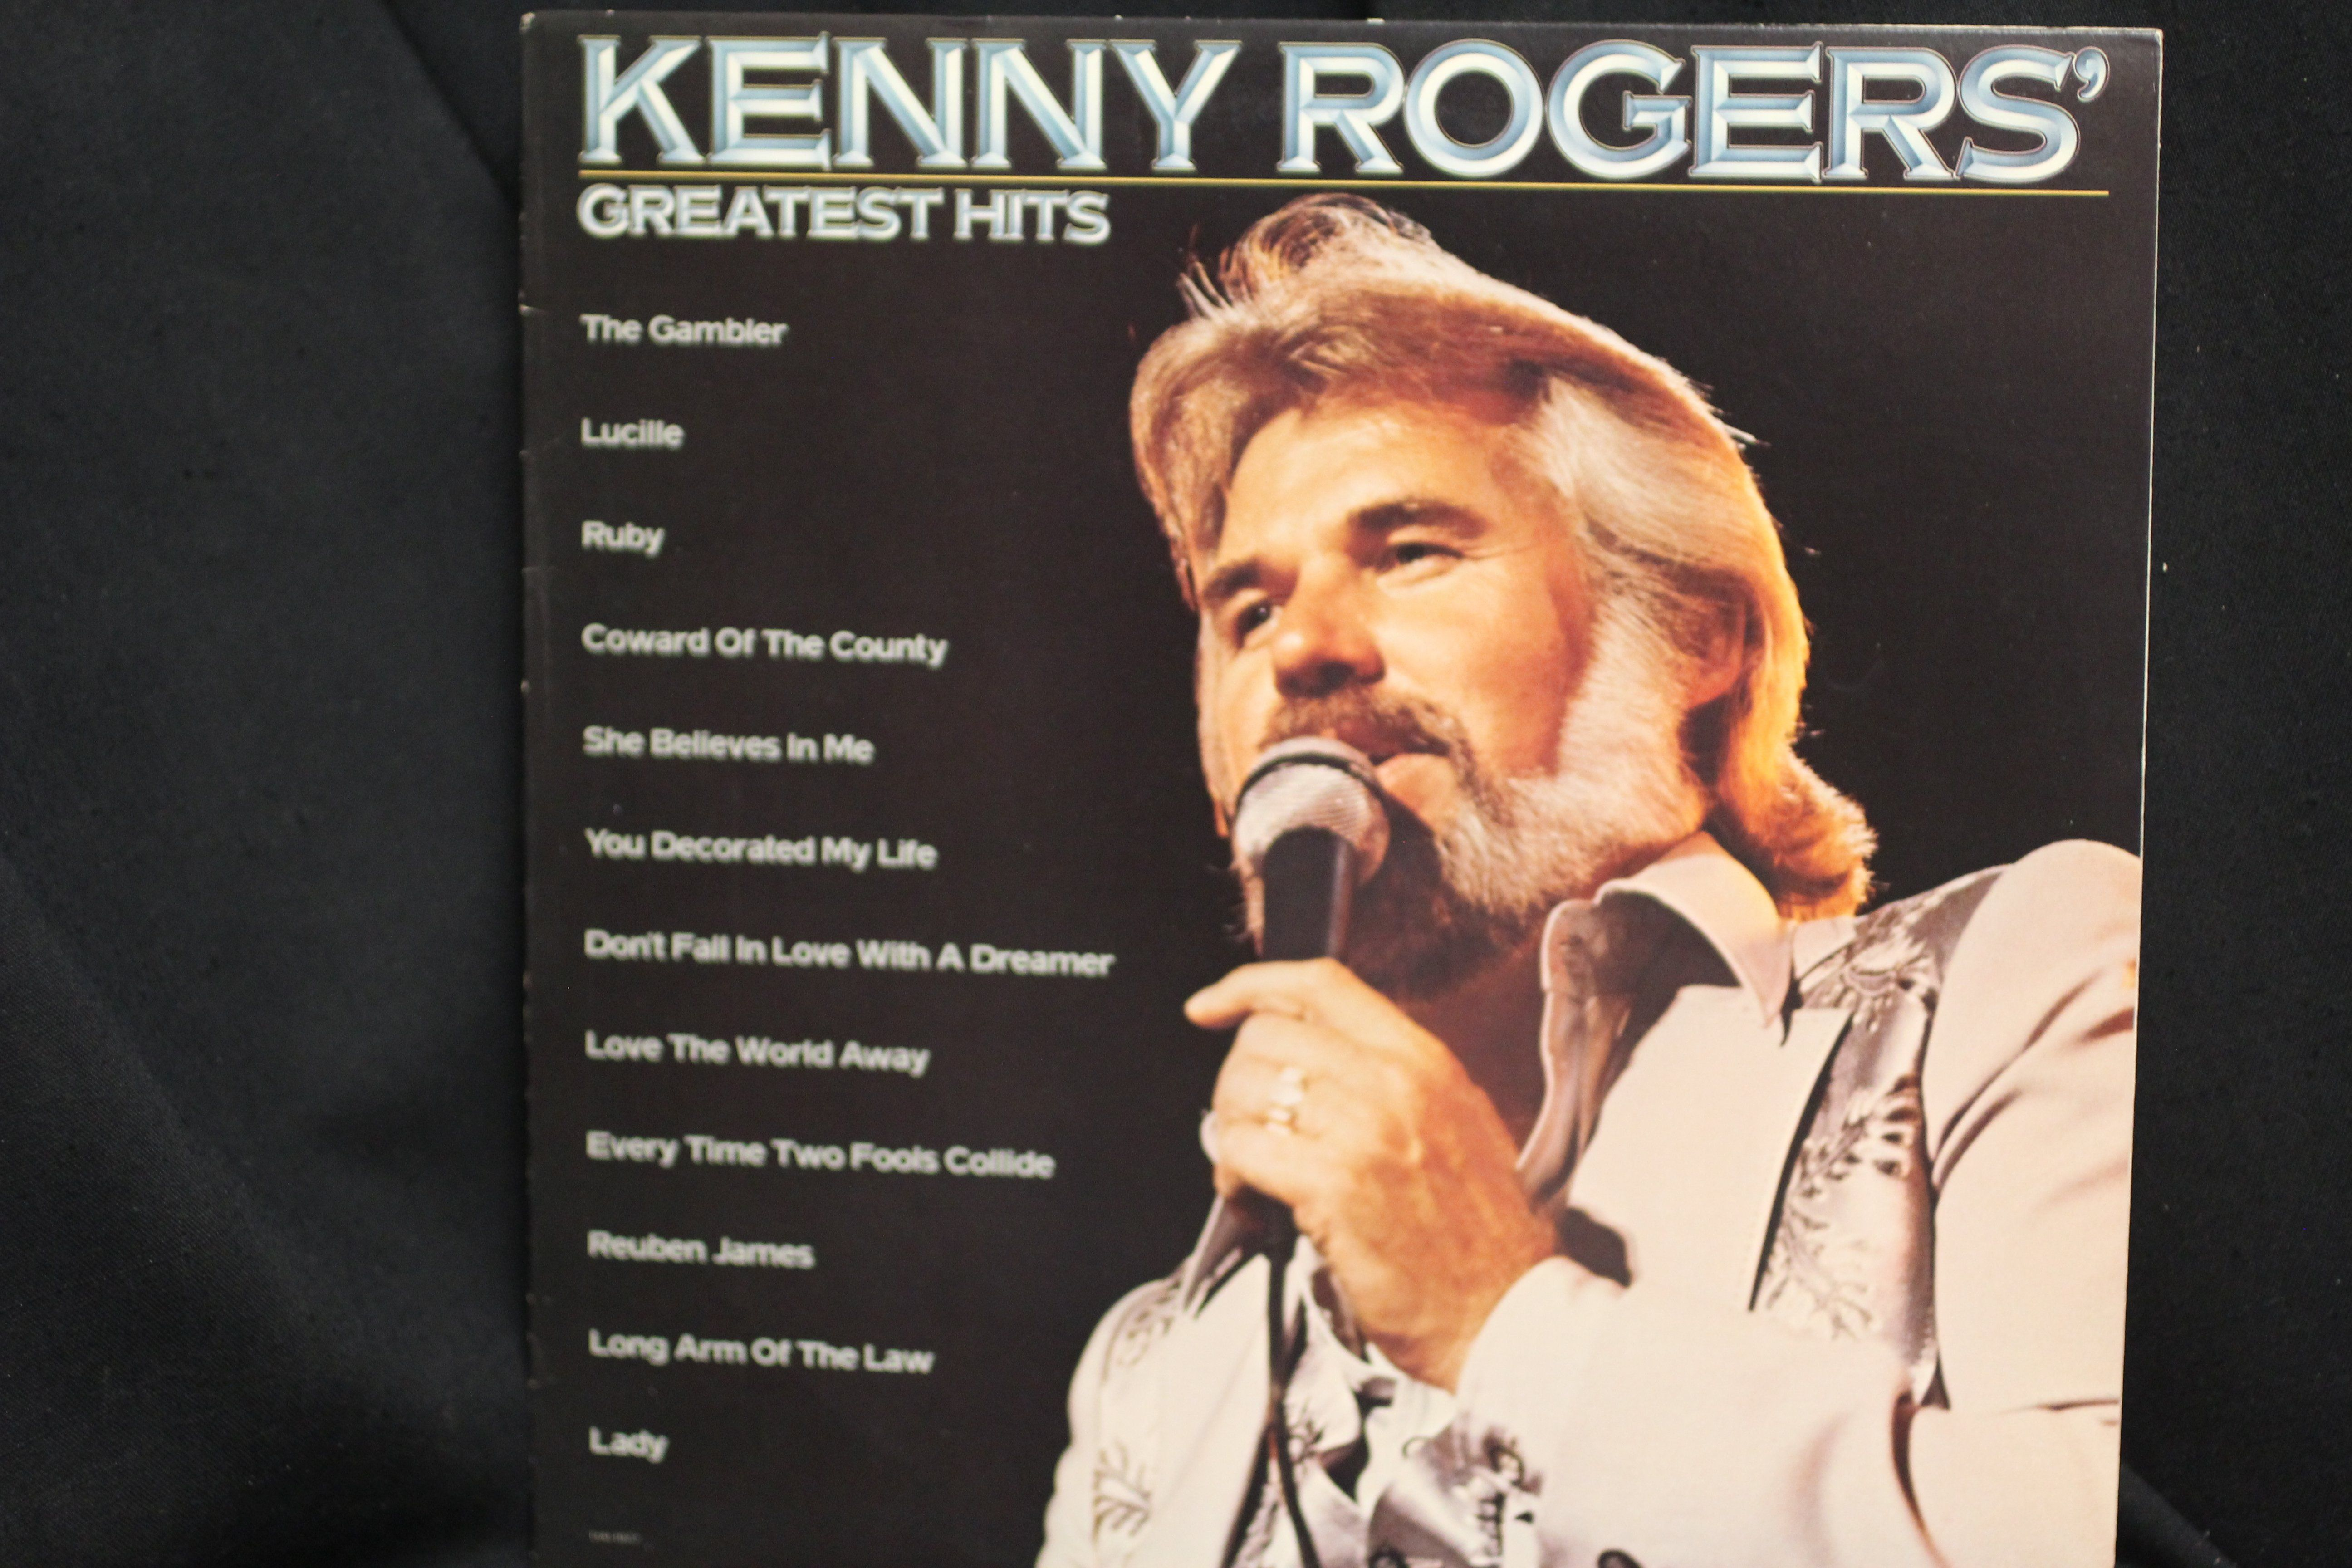 Kenny Rogers - Greatest Hits in 2018 | Products | Pinterest | Album ...